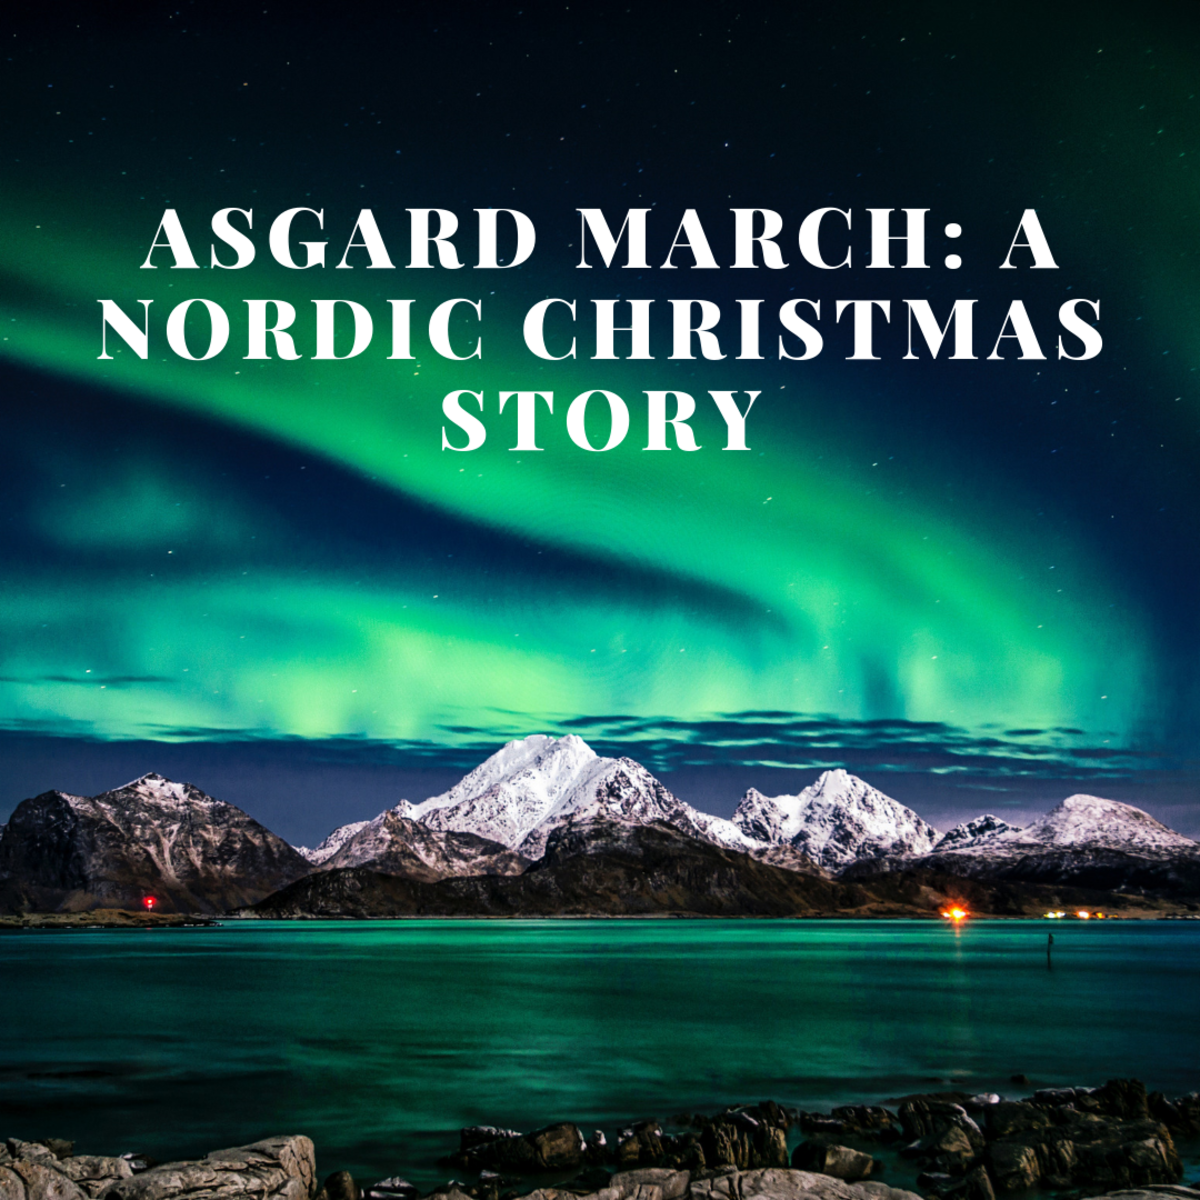 Asgard March: A Nordic Christmas Story